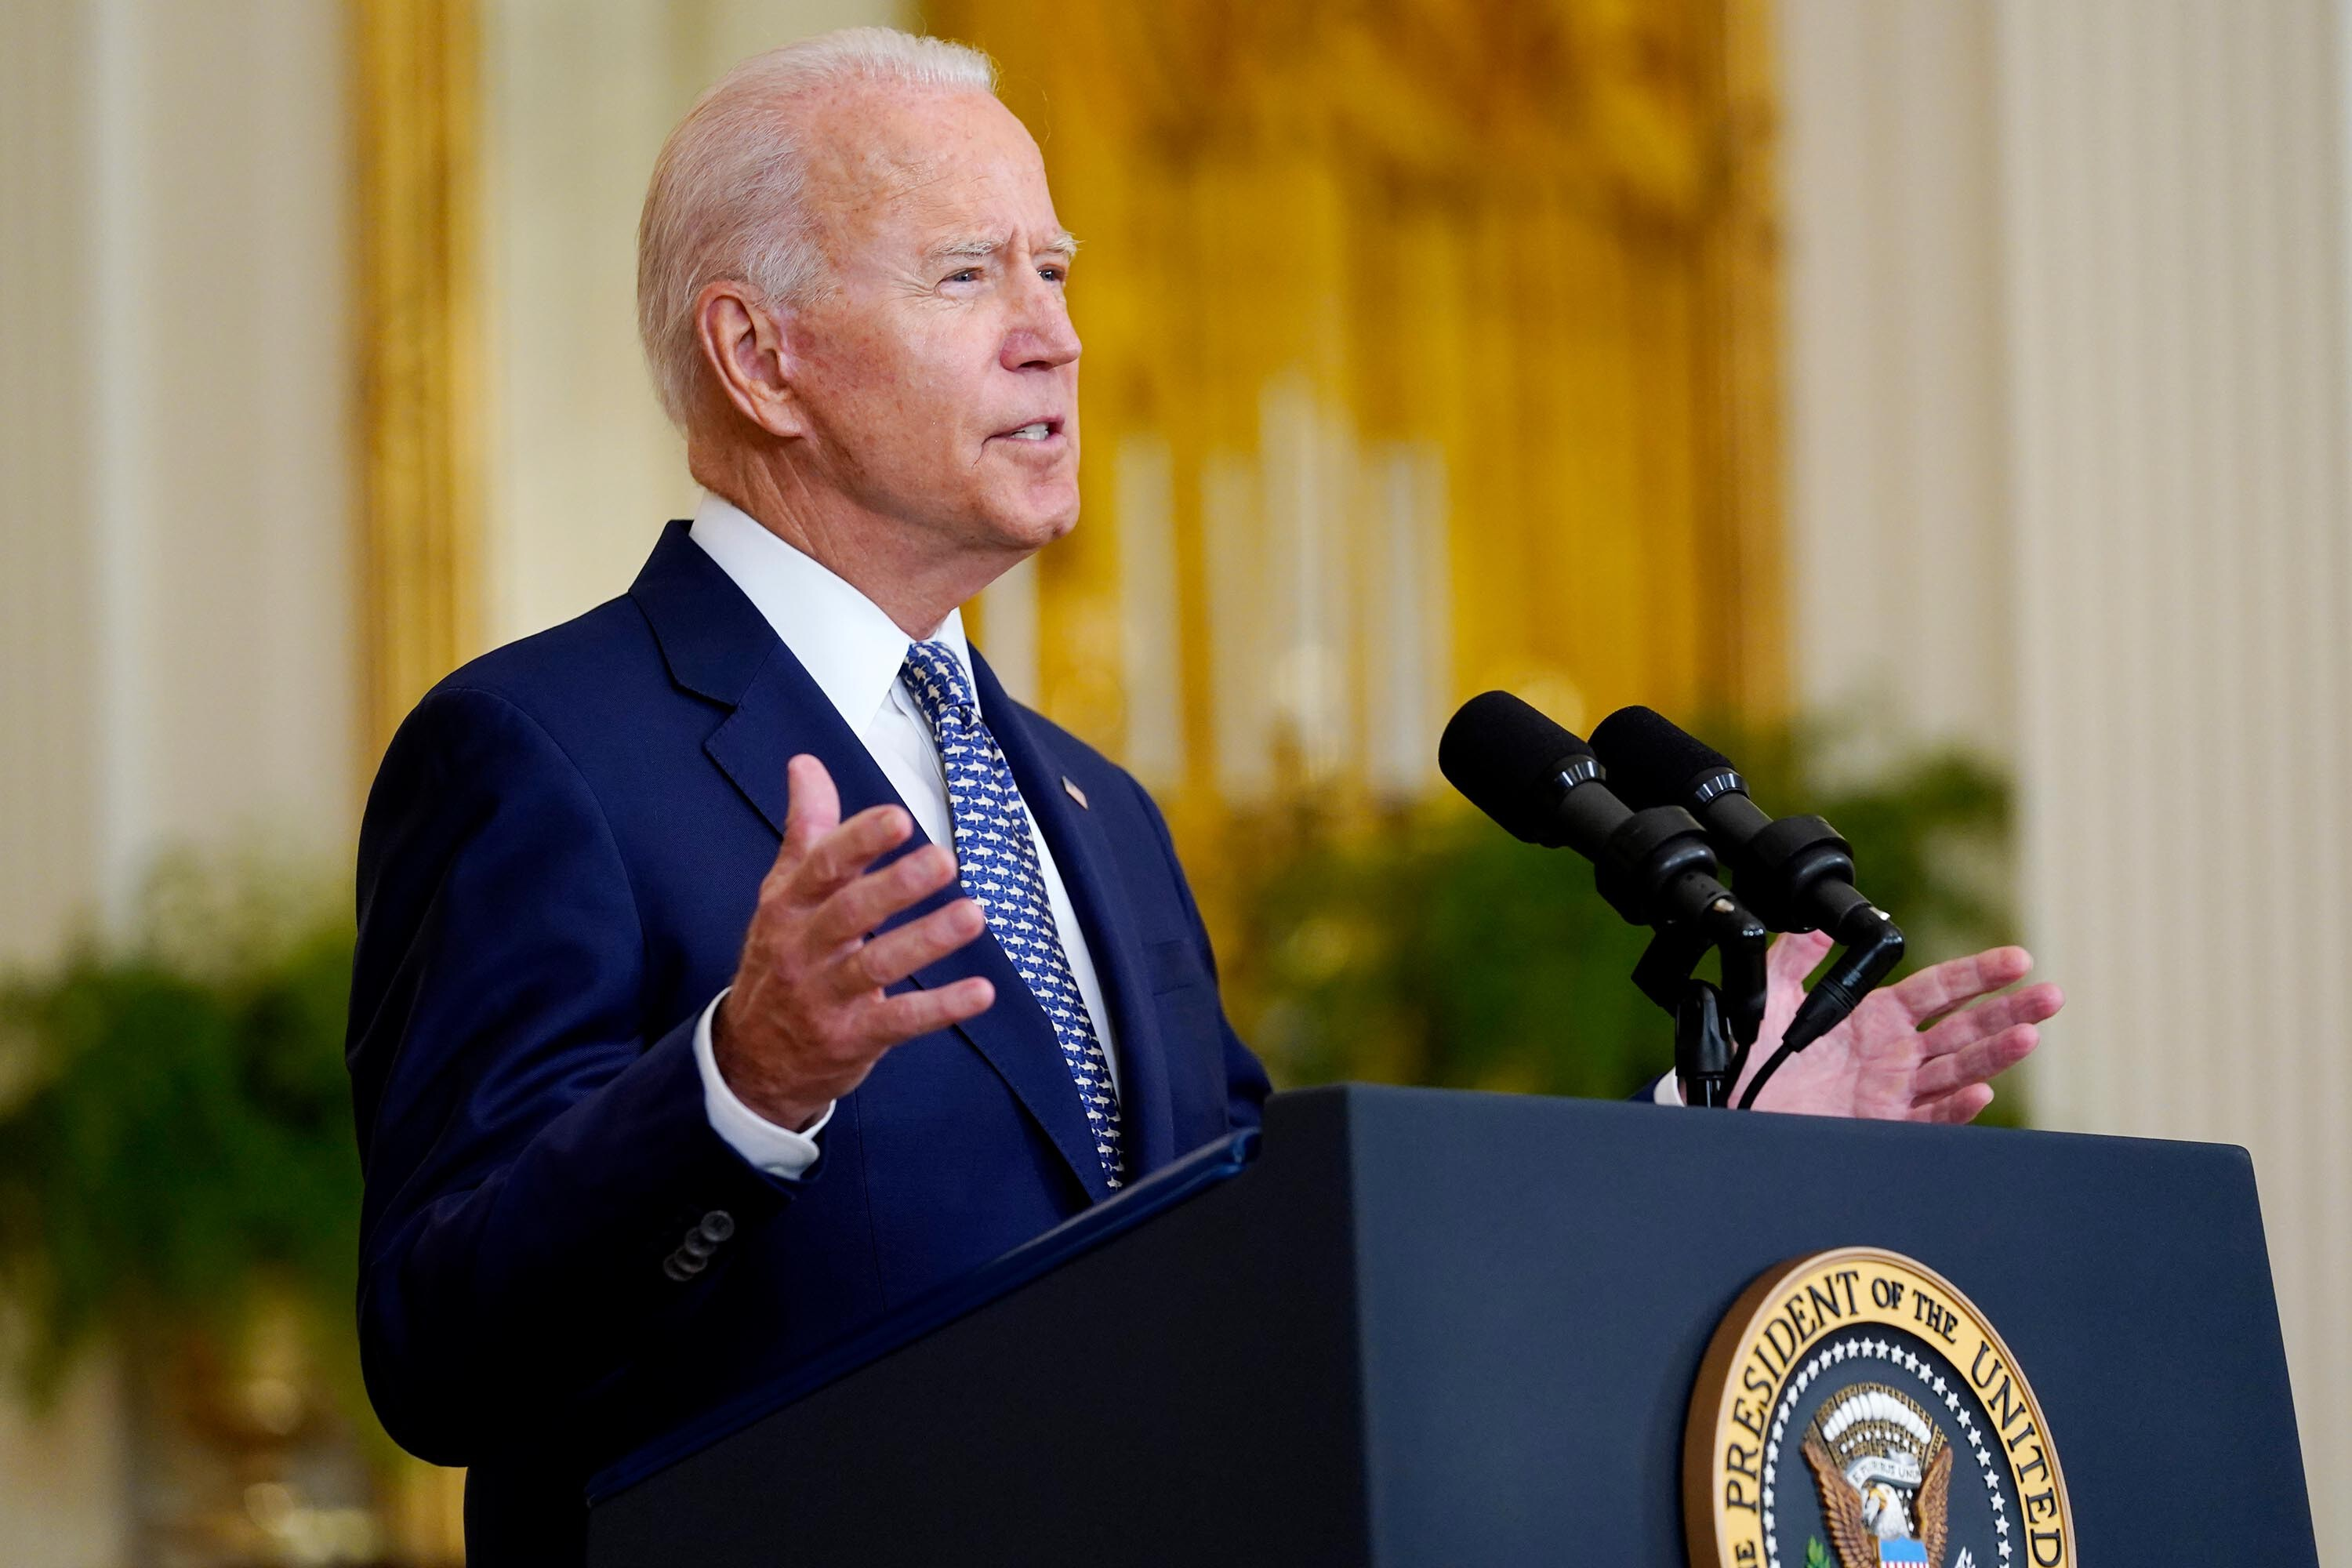 Biden tackles inflation concerns as he touts wins on infrastructure